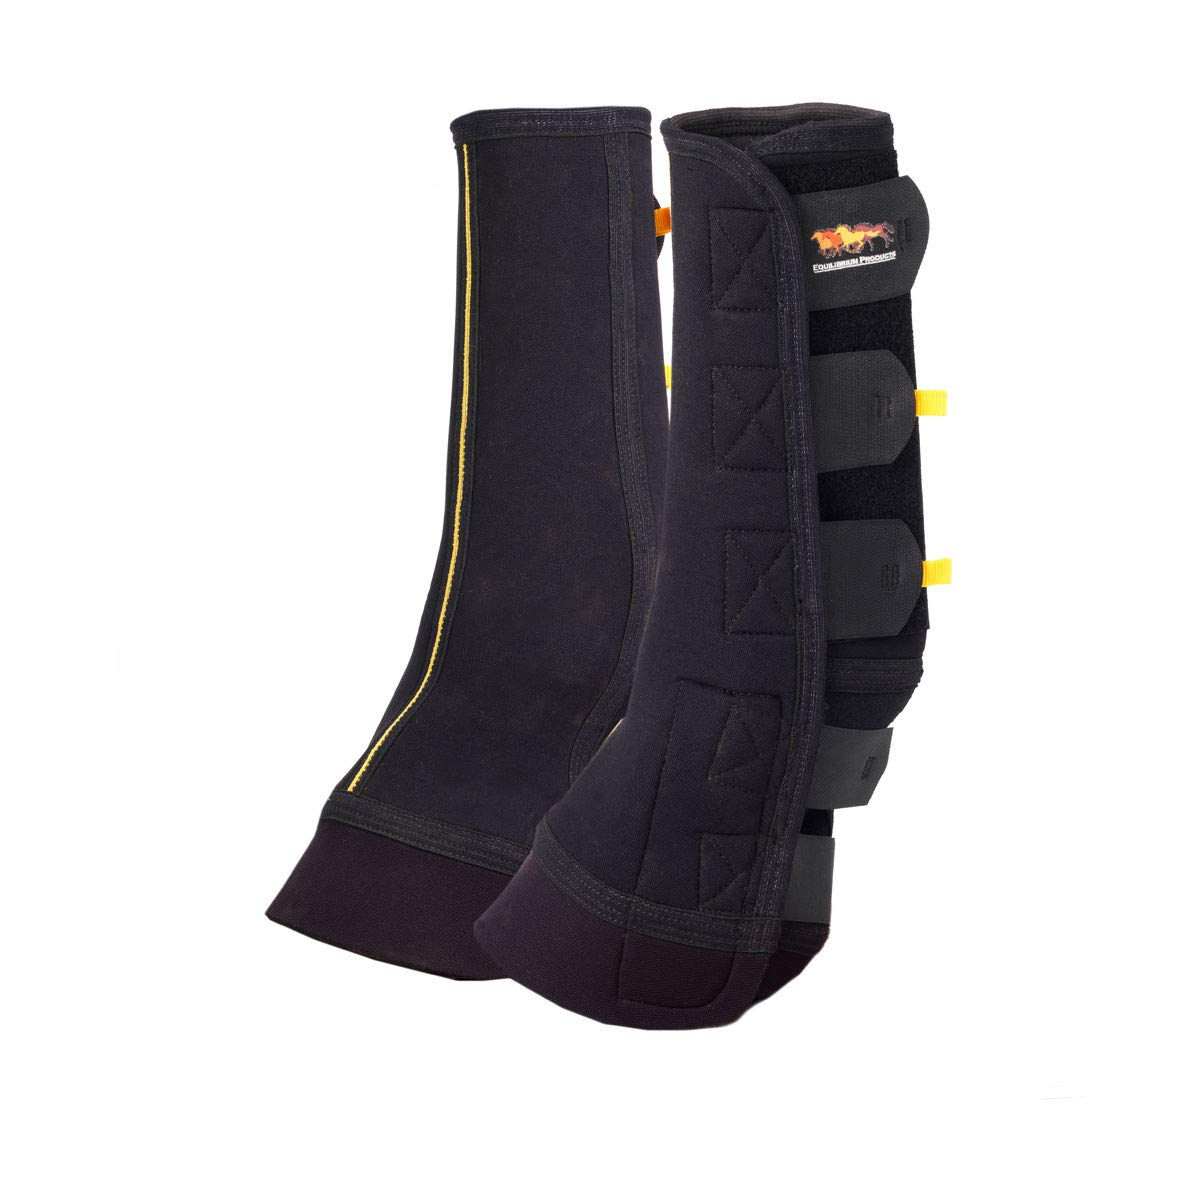 Navy X Large Navy X Large equilibrium Equi-Chaps Close Contact Chaps